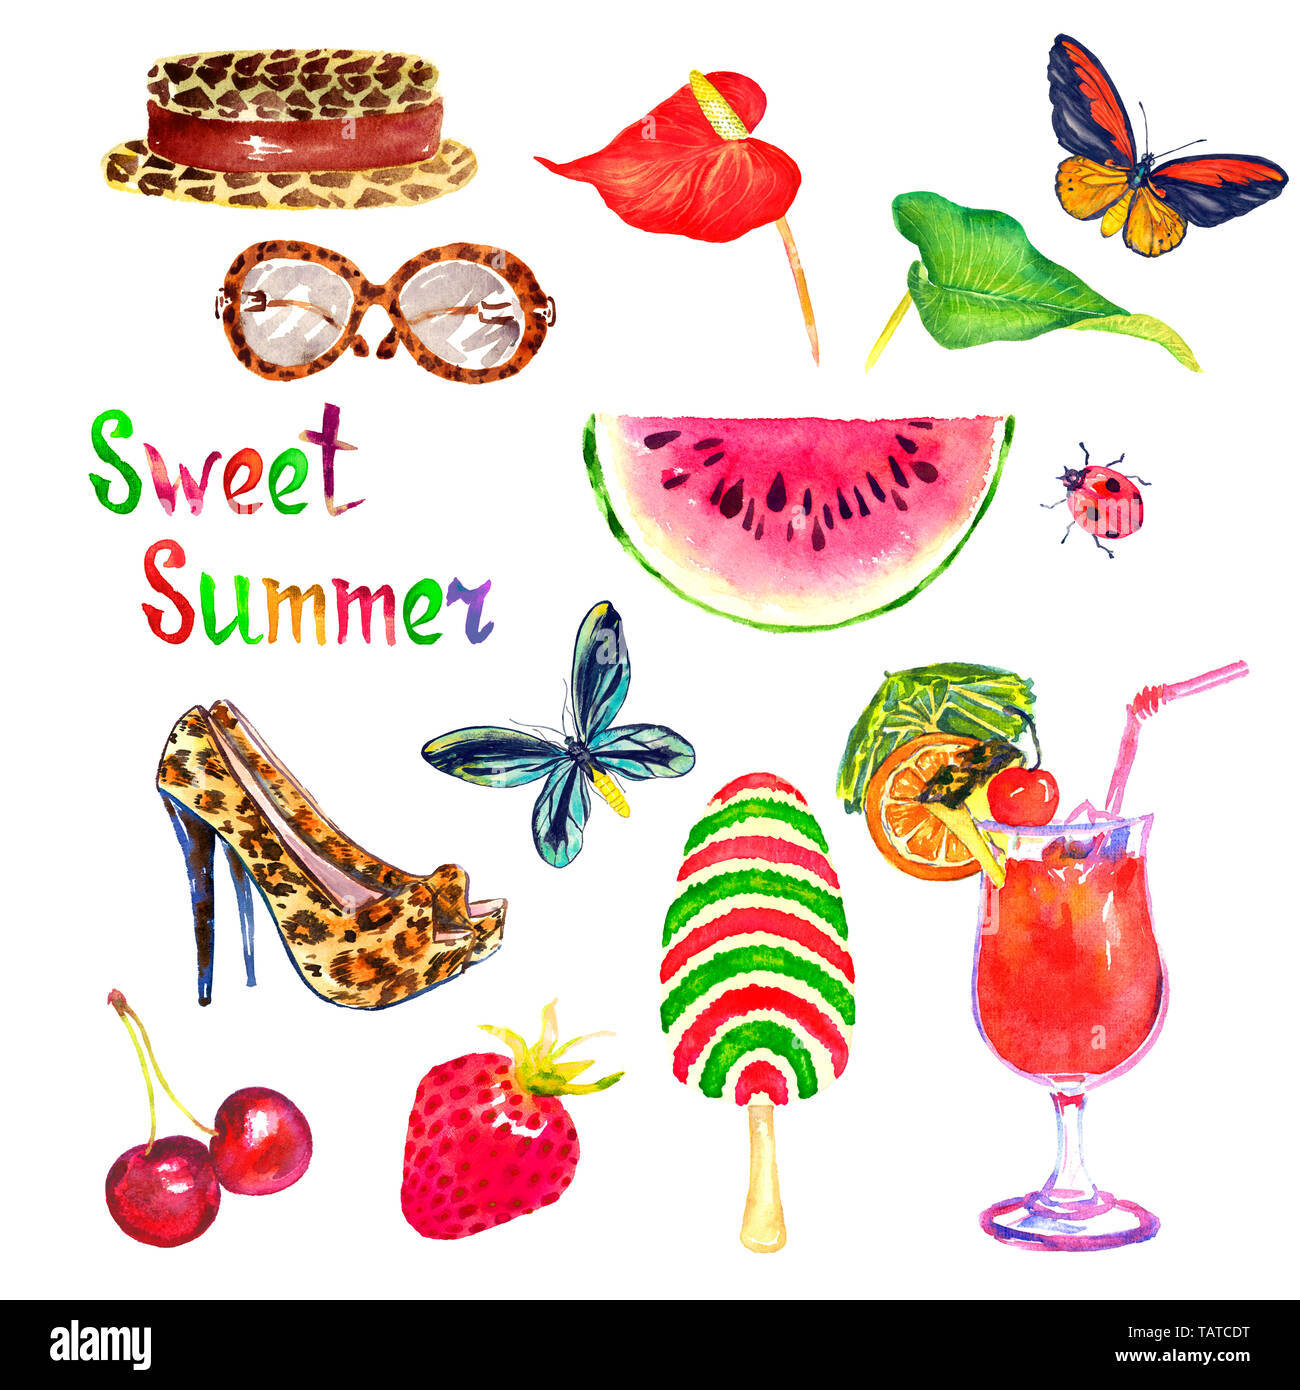 Sweet summer watercolor isolated illustration set, hat, sunglasses, stiletto shoes, cherry, strawberry, watermelon, ice cream, anthurium flower, Ornit - Stock Image